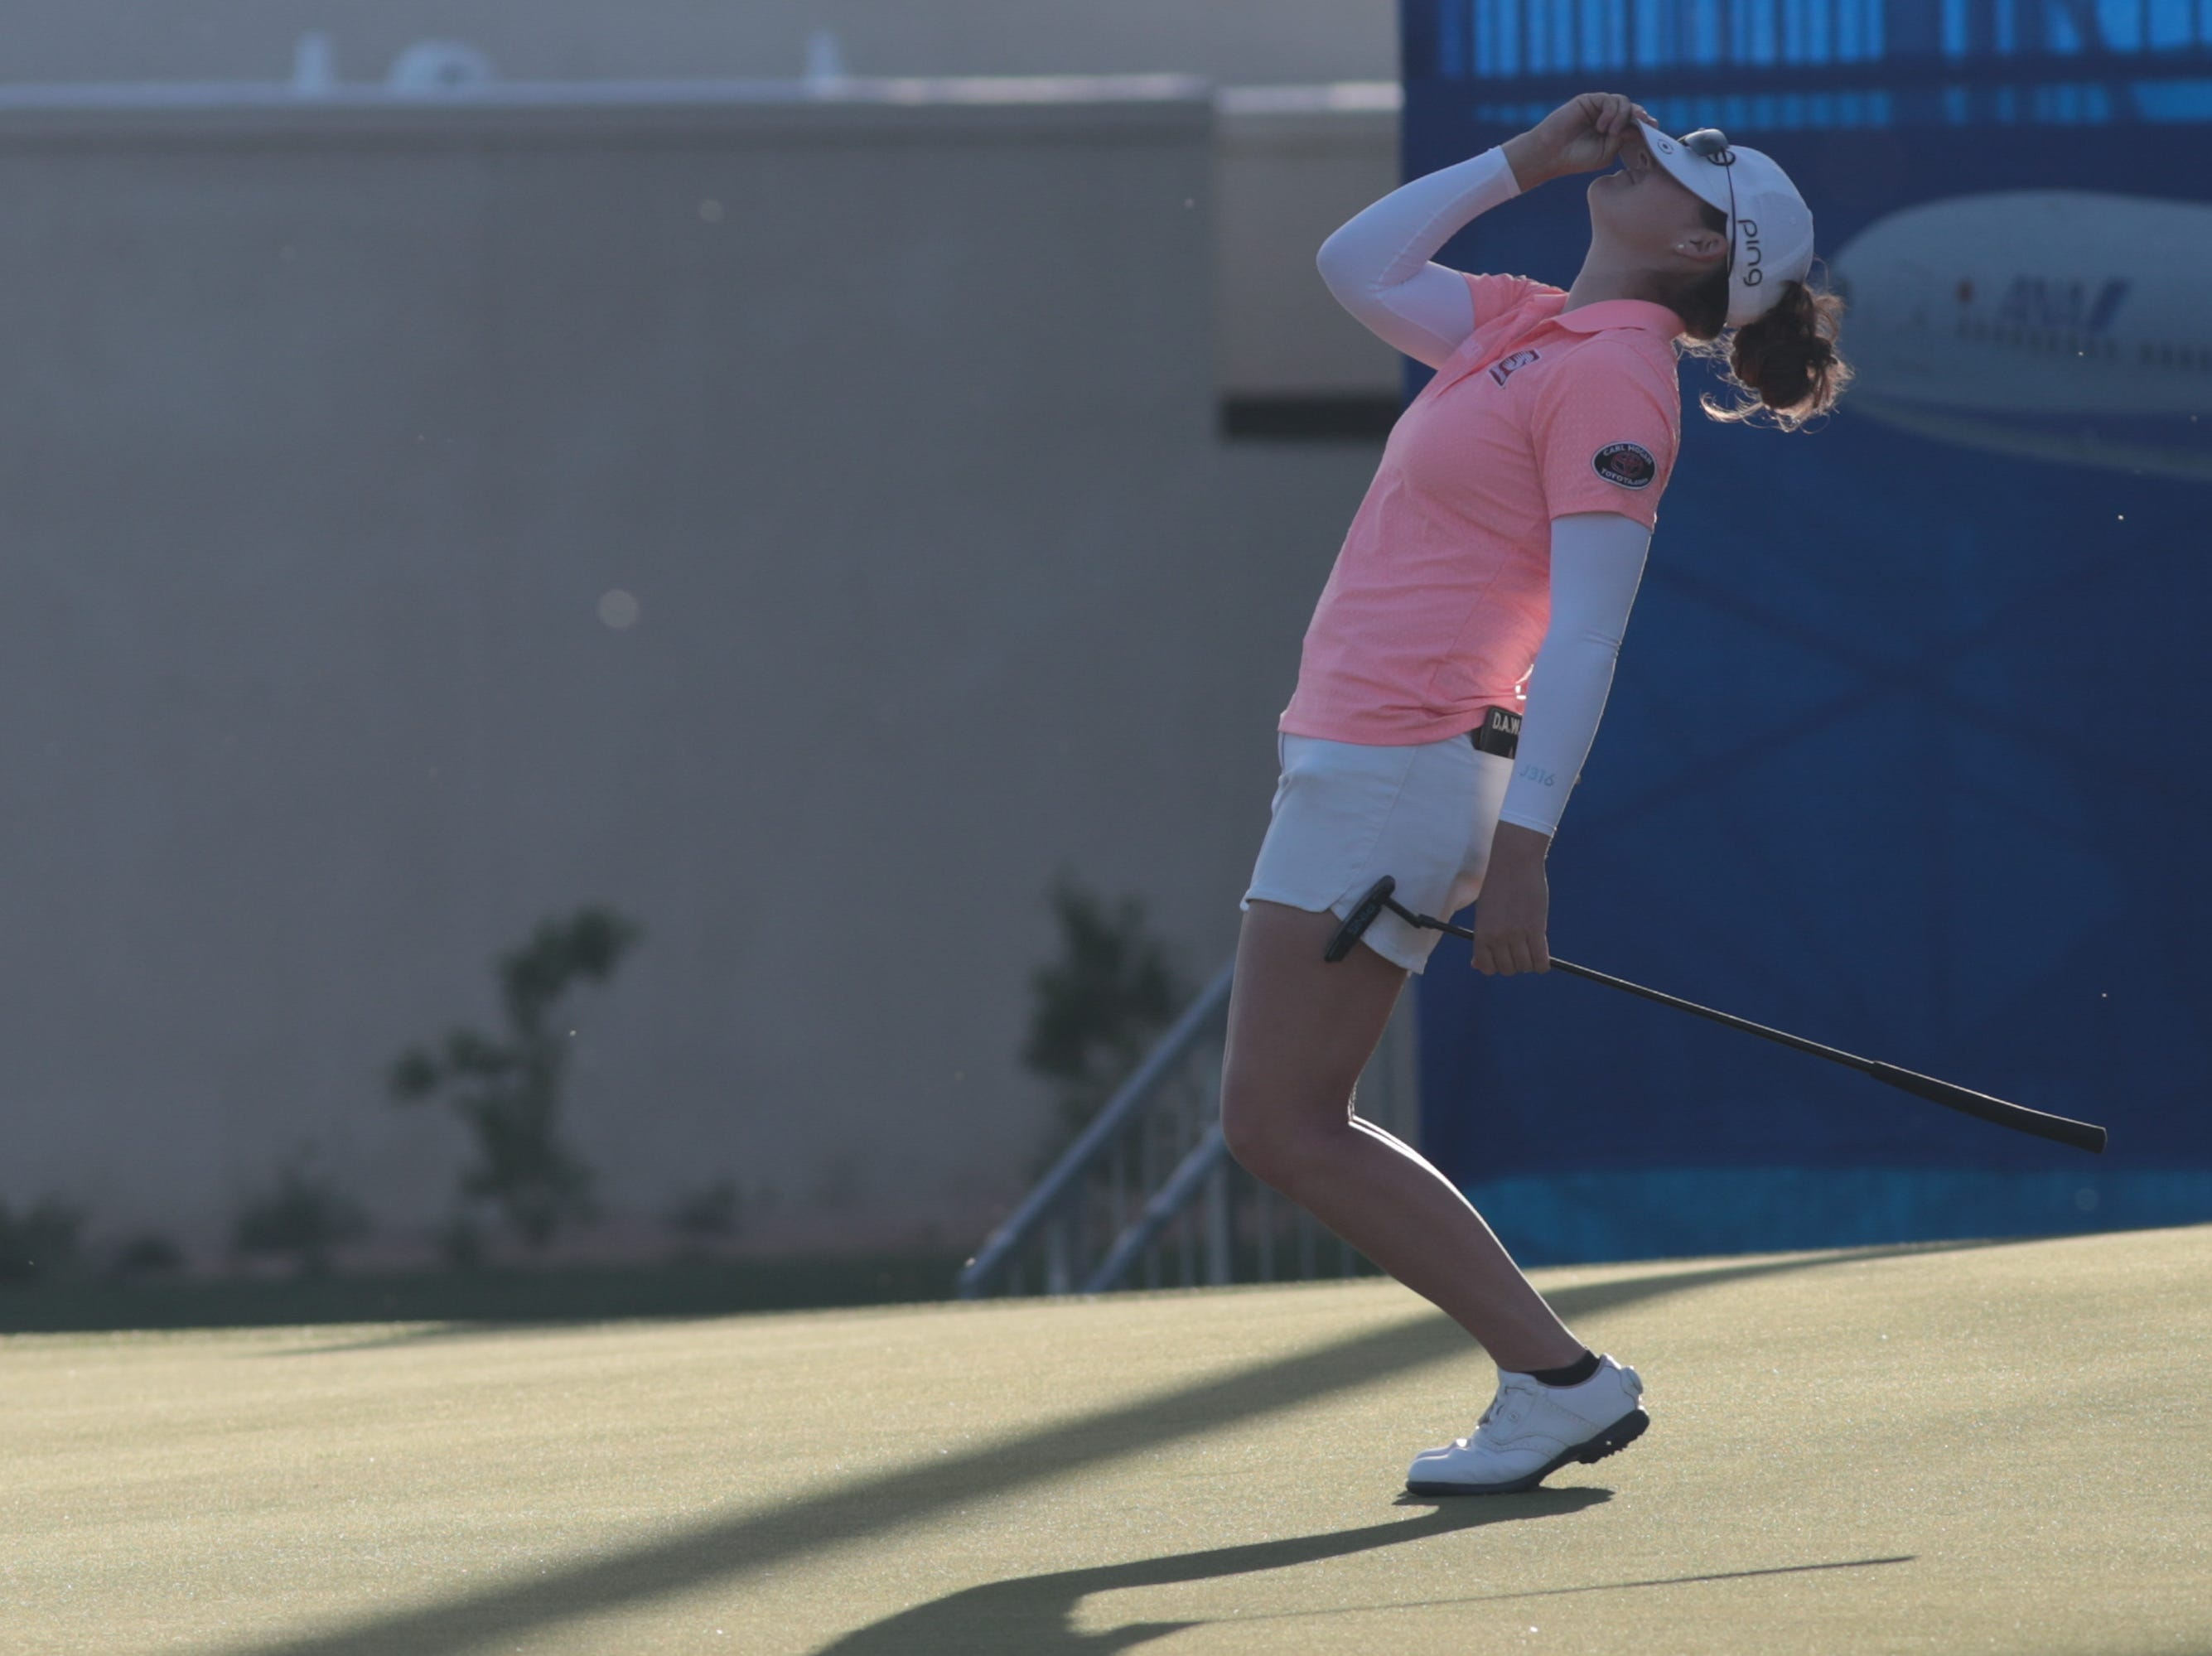 Ally McDonald reacts after missing a putt on the 18th hole of the Dinah Shore Course at the ANA Inspiration, Rancho Mirage, Calif., April 6, 2019.